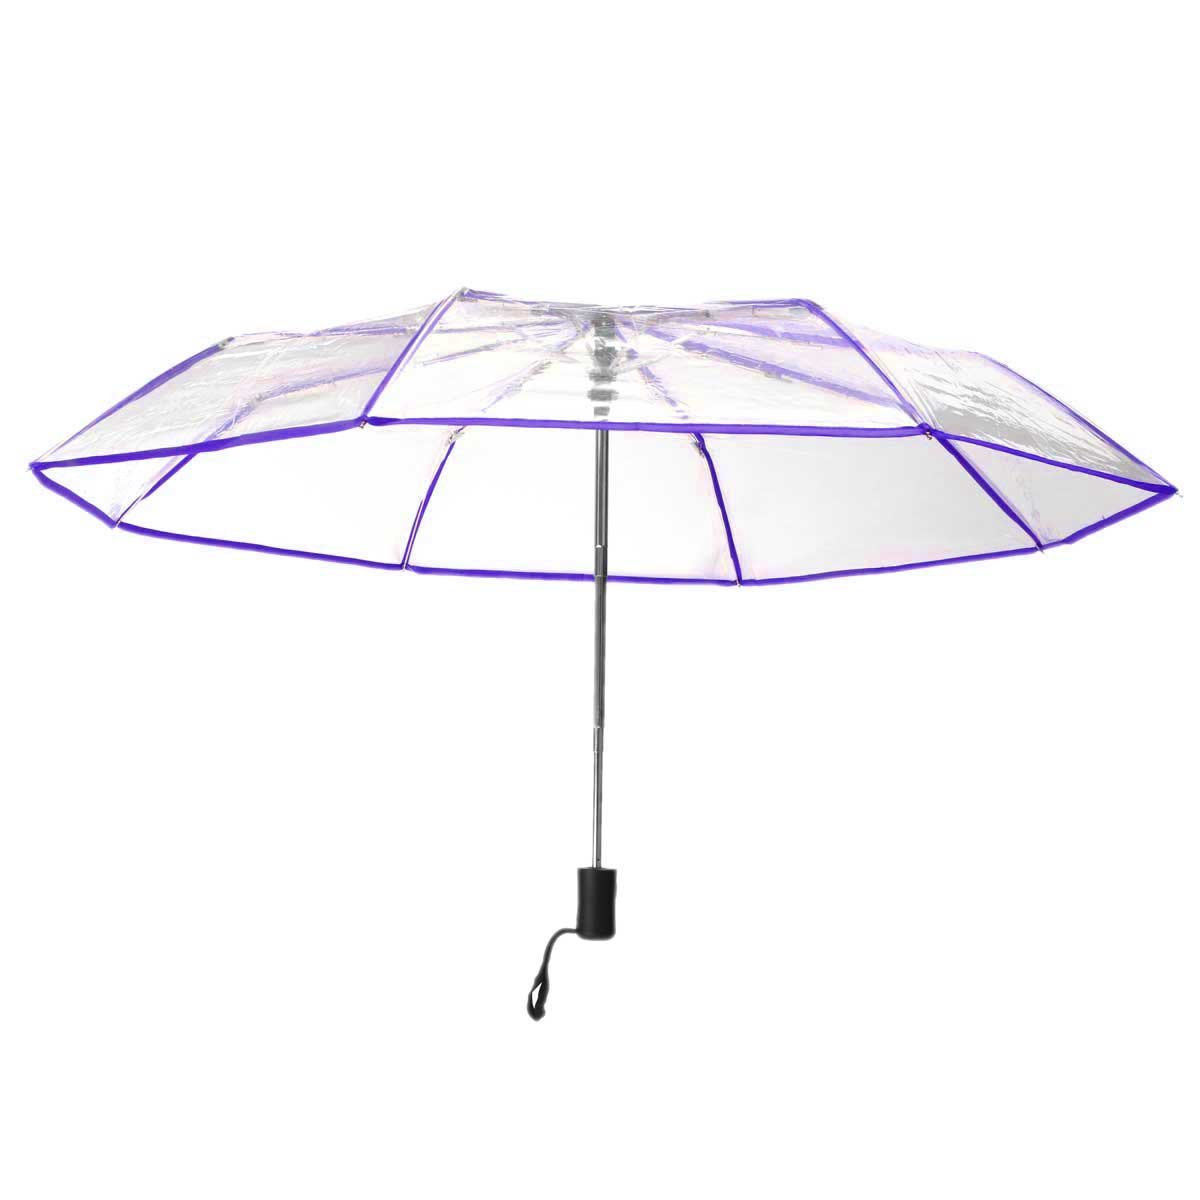 In any event, if you've enjoyed shopping with us please recommend us to your friends. Alternatively, take a selfie or picture of you posing with your new brolly. Email it to us at info@dvlnpxiuf.ga, we'll add it to our social media pages and blog before entering you into our prize draw.